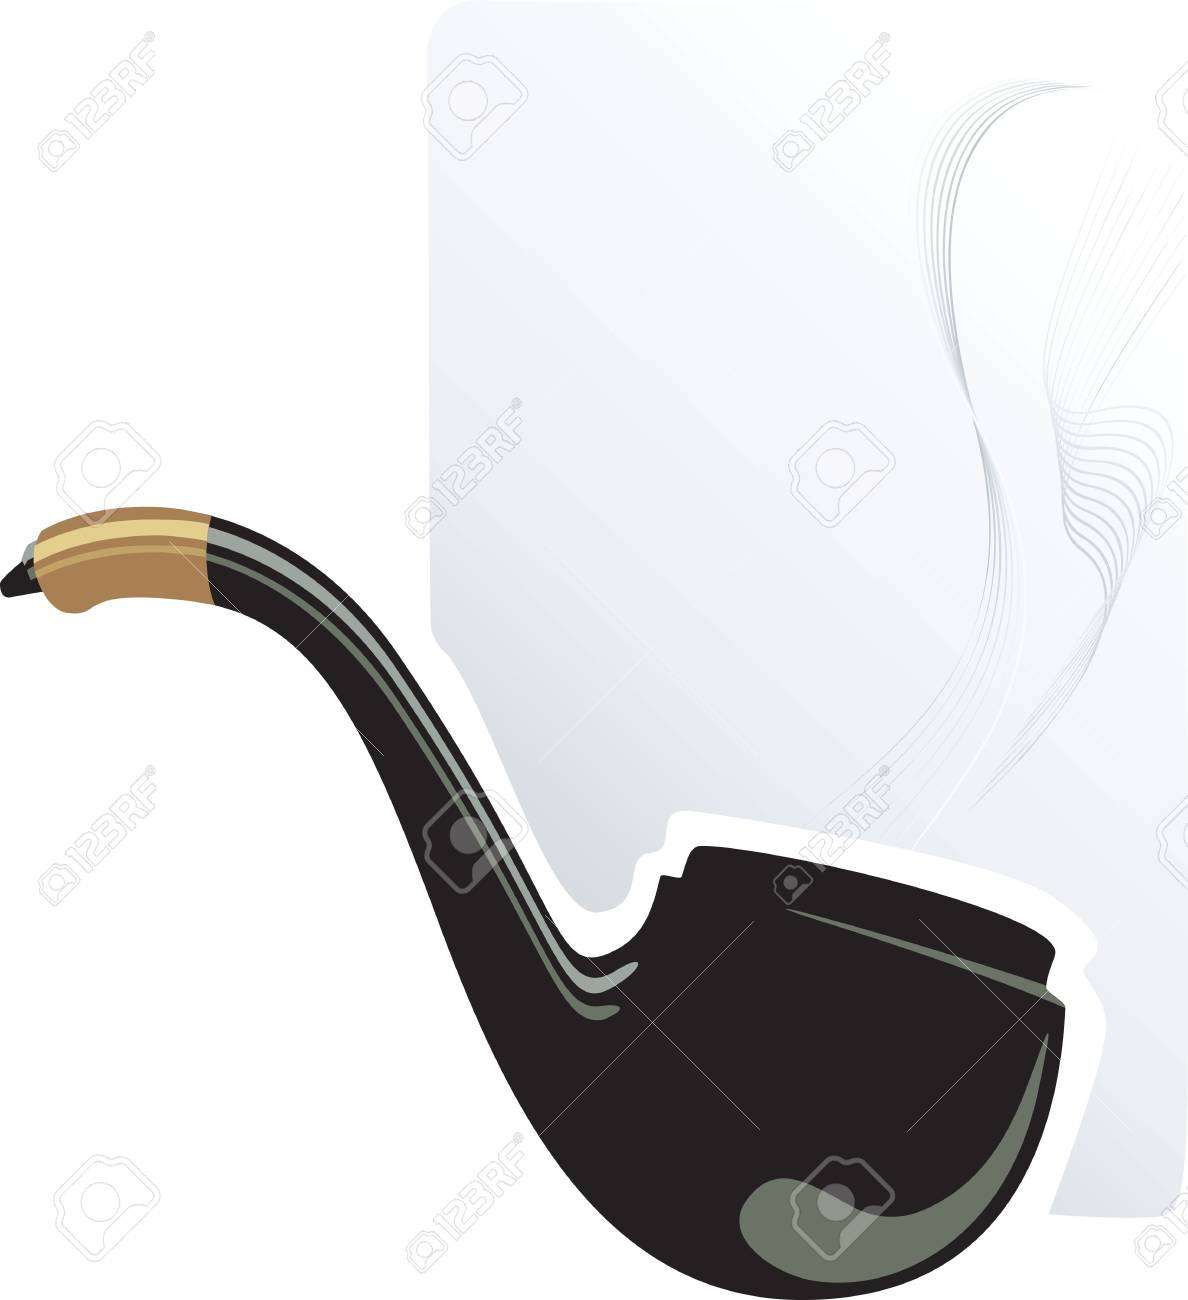 Illustration of a smoking pipe isolated Stock Photo - 3389223